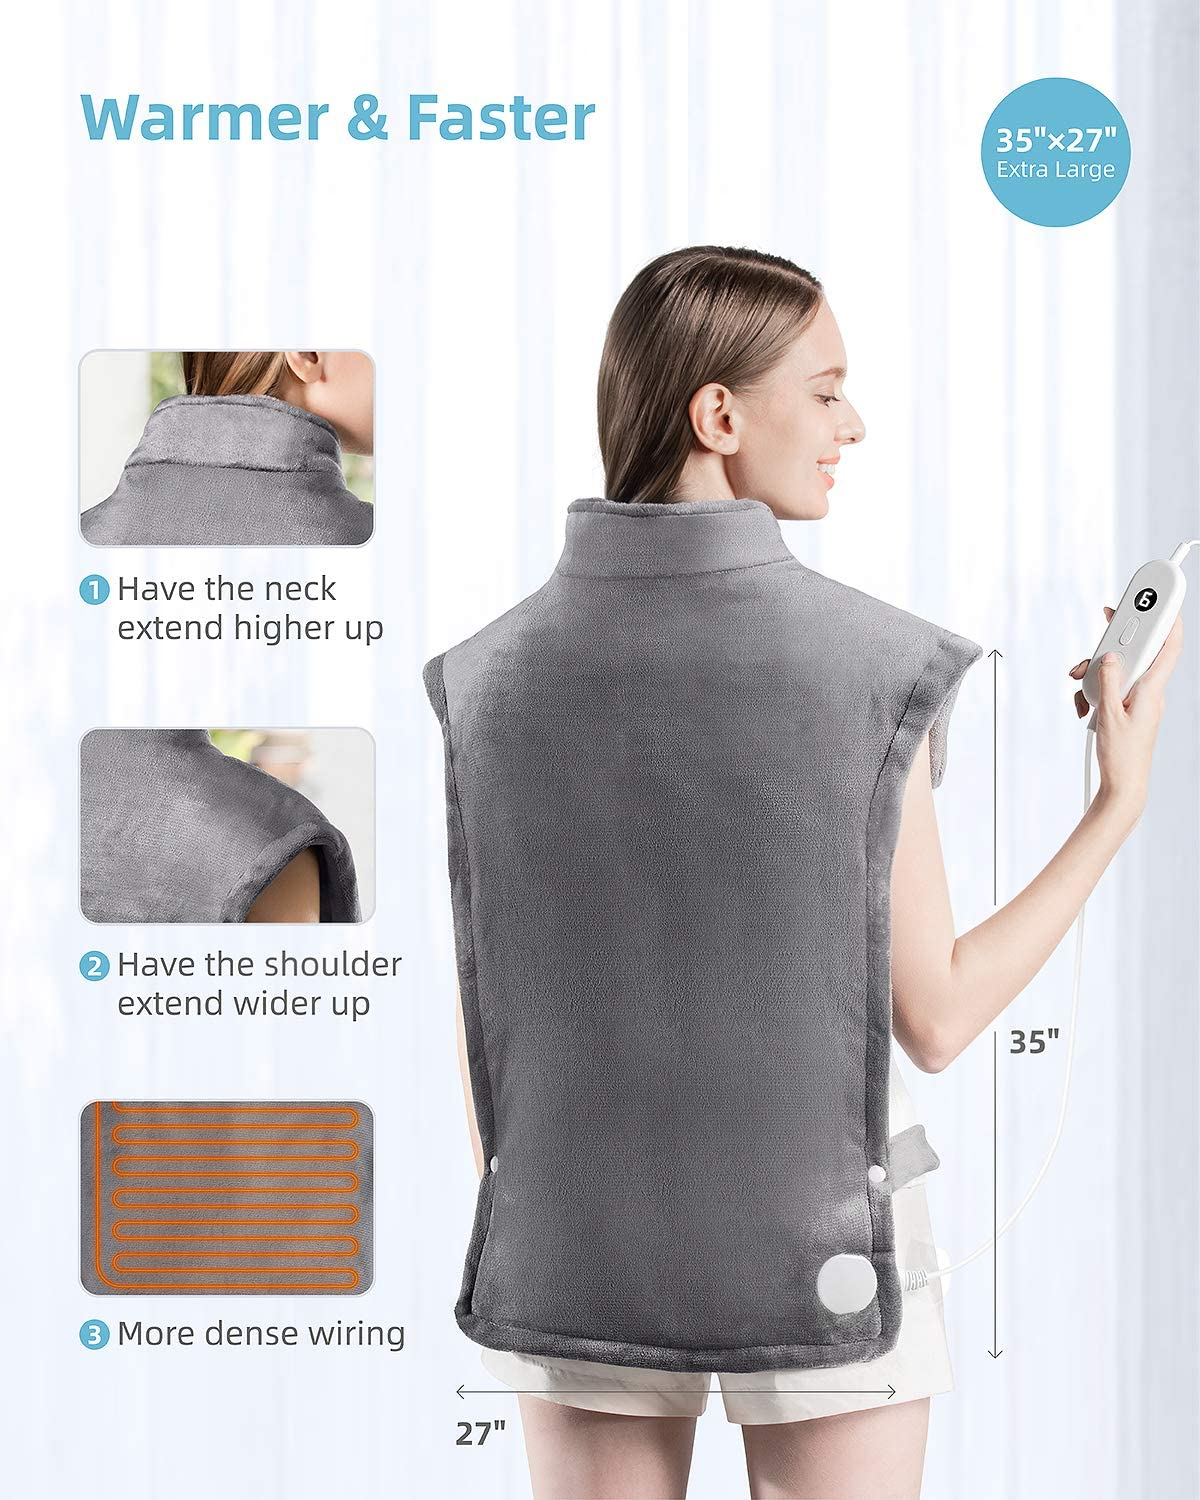 """iTeknic Heating Pad for Back Pain Relief, [35""""x27""""] Extra Large Heating Pad for Neck and Shoulders with Auto Shut Off, 6 Temperature Settings, Fast Heating - Electric Heat Pad for Cramps Gray: Health & Personal Care"""